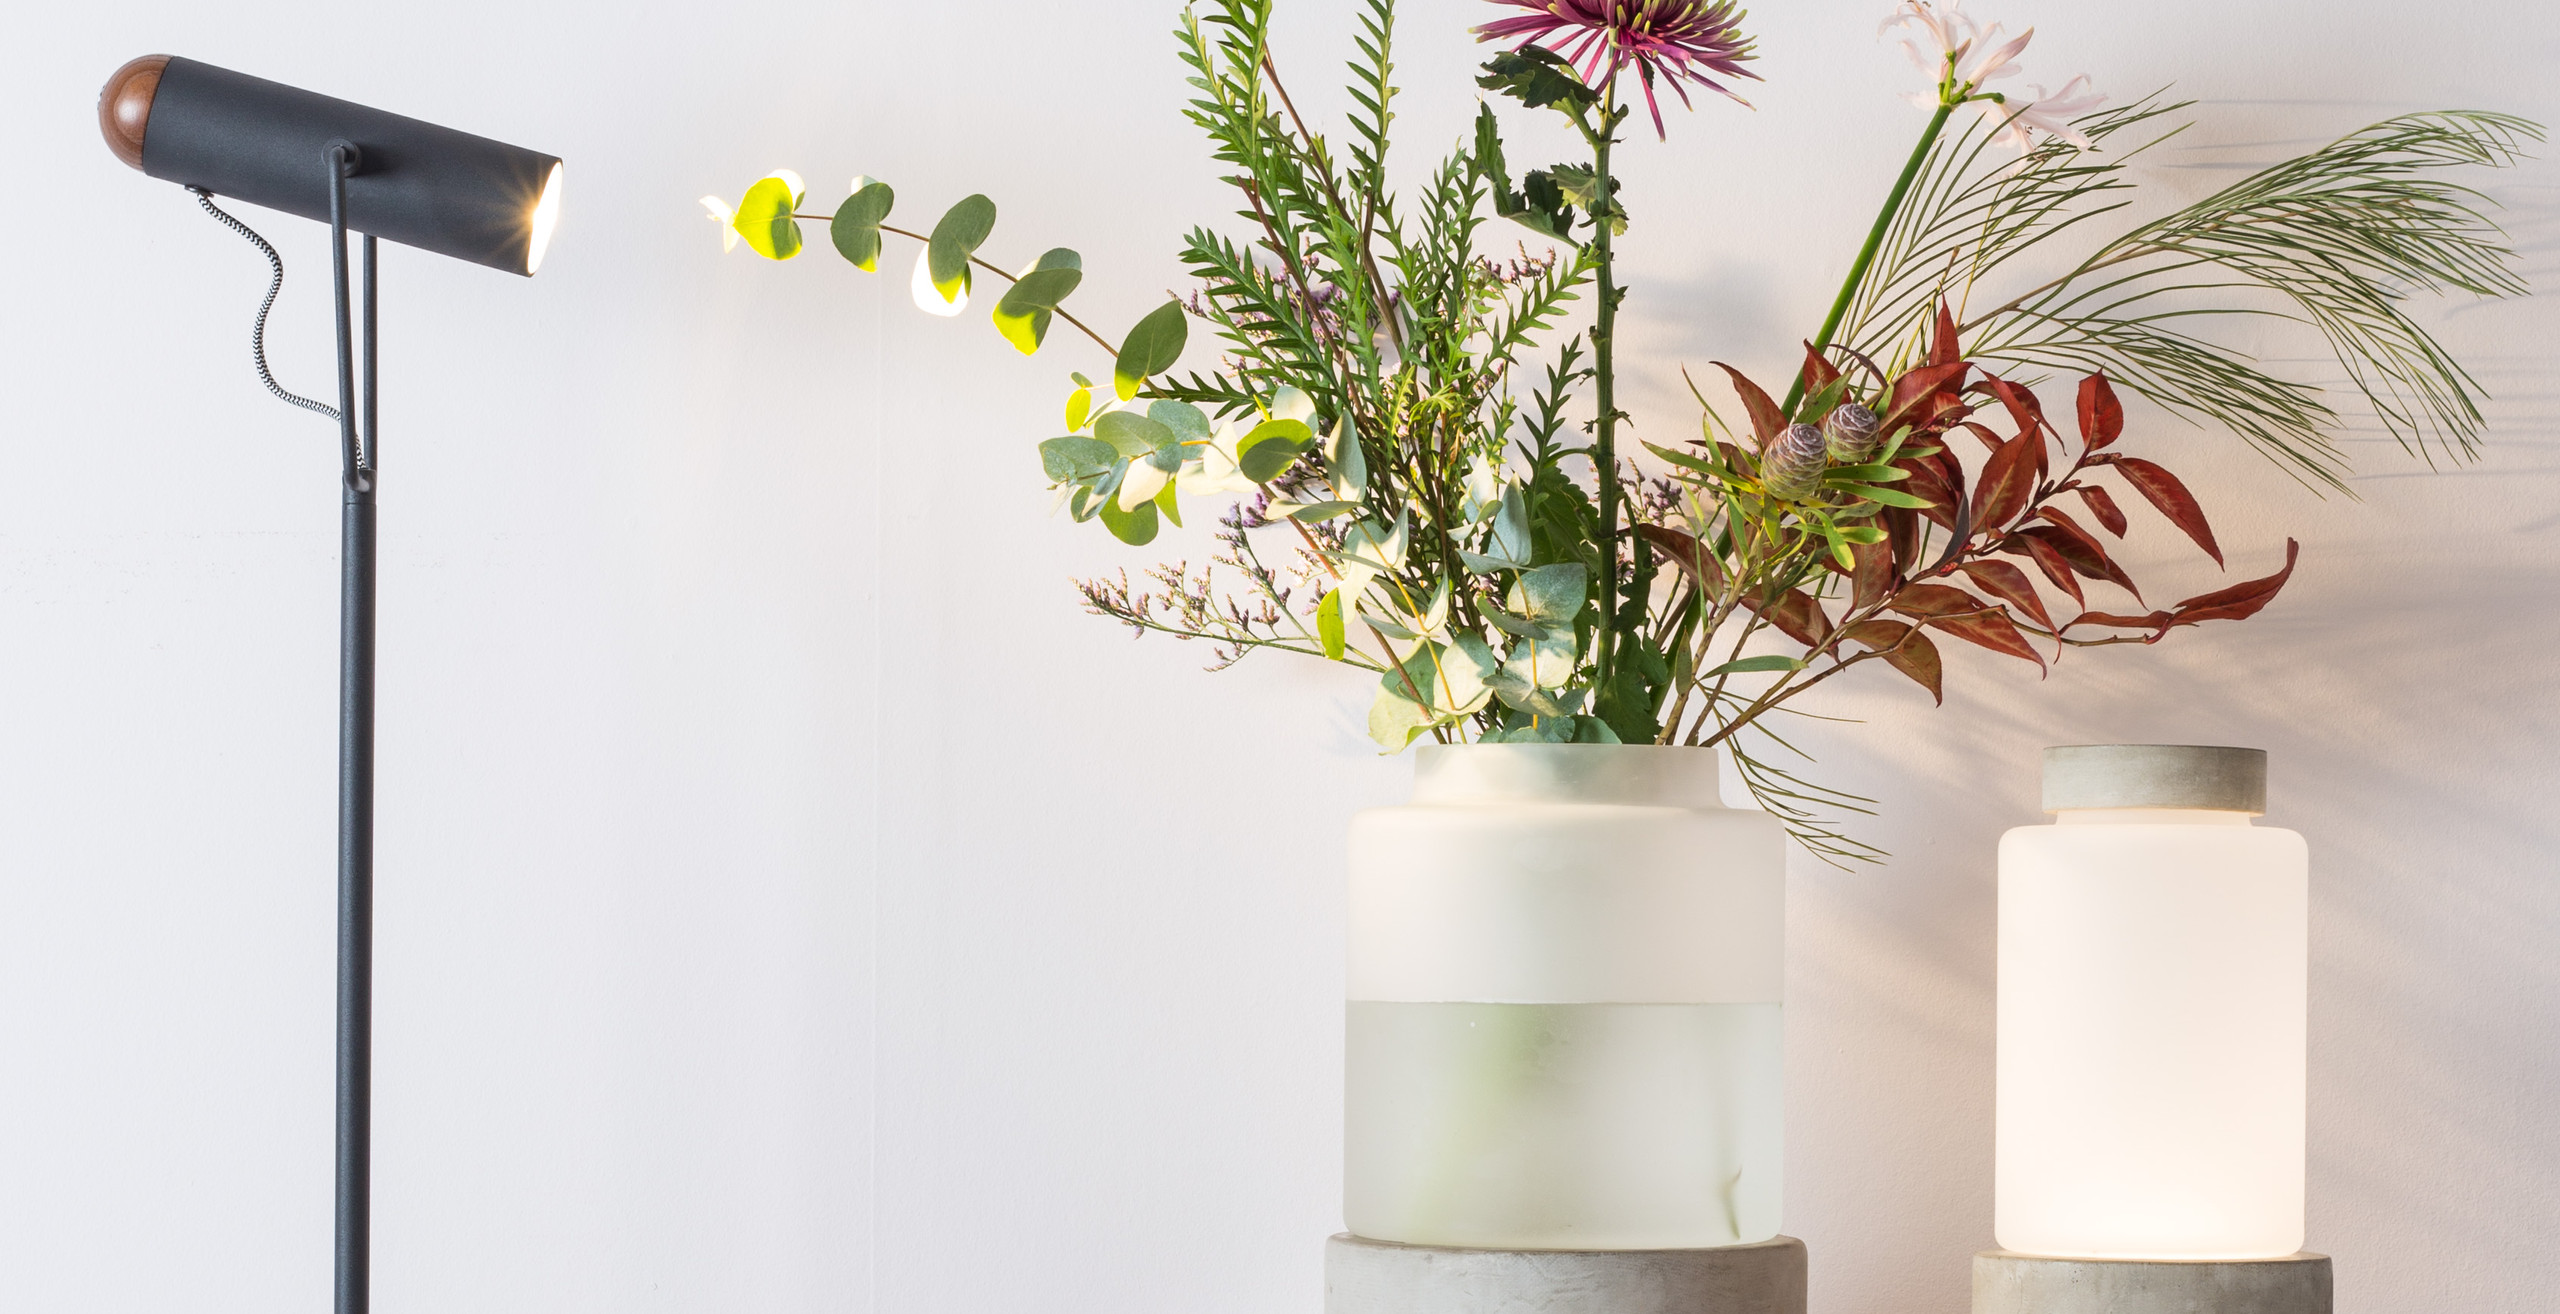 Light and Vase with Flowers